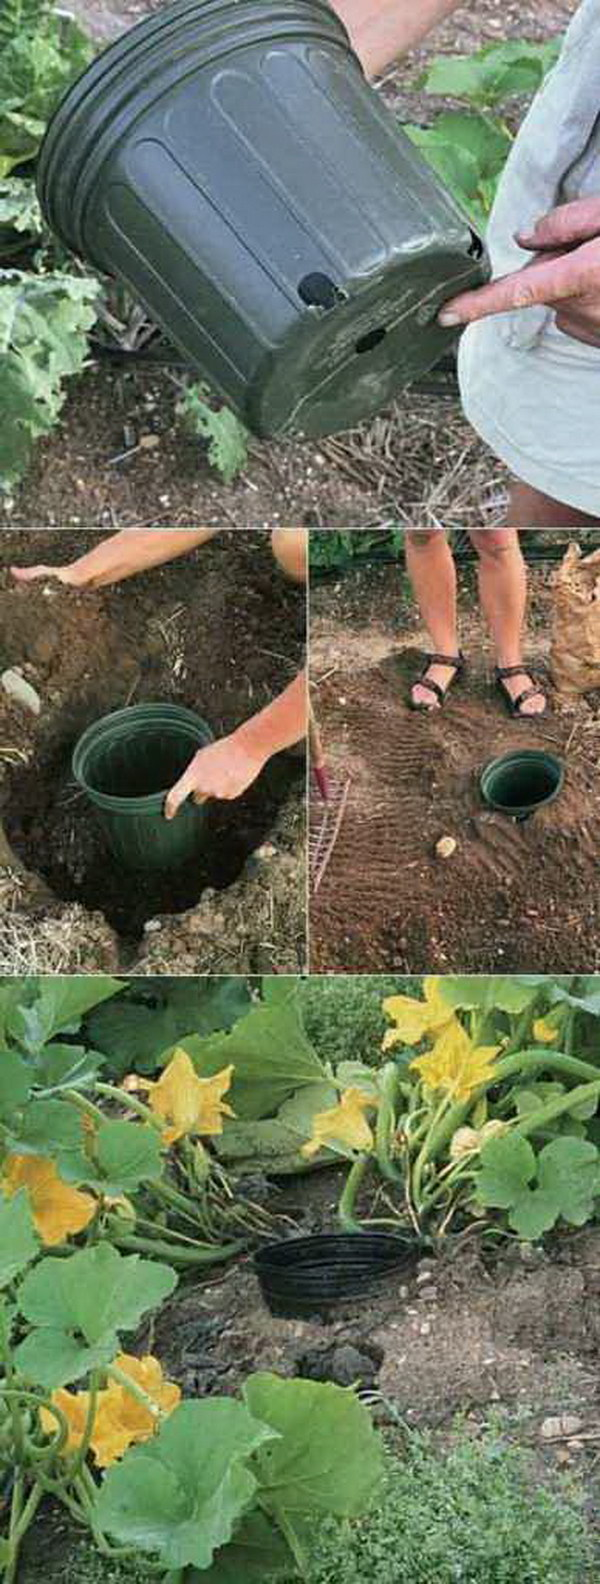 Use The Pot To Water The Roots Easily.